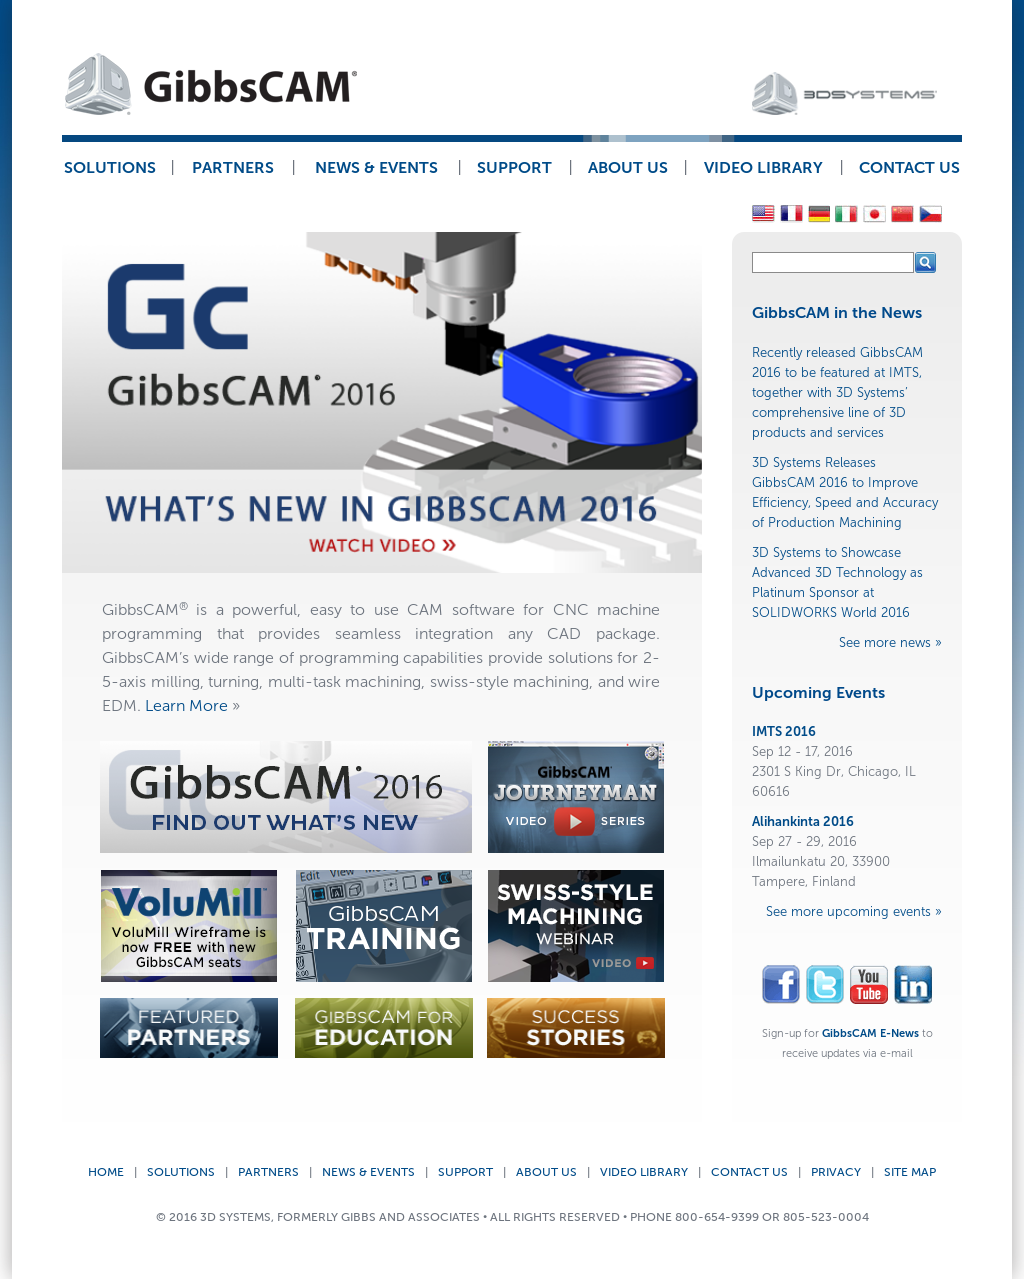 GibbsCAM Competitors, Revenue and Employees - Owler Company